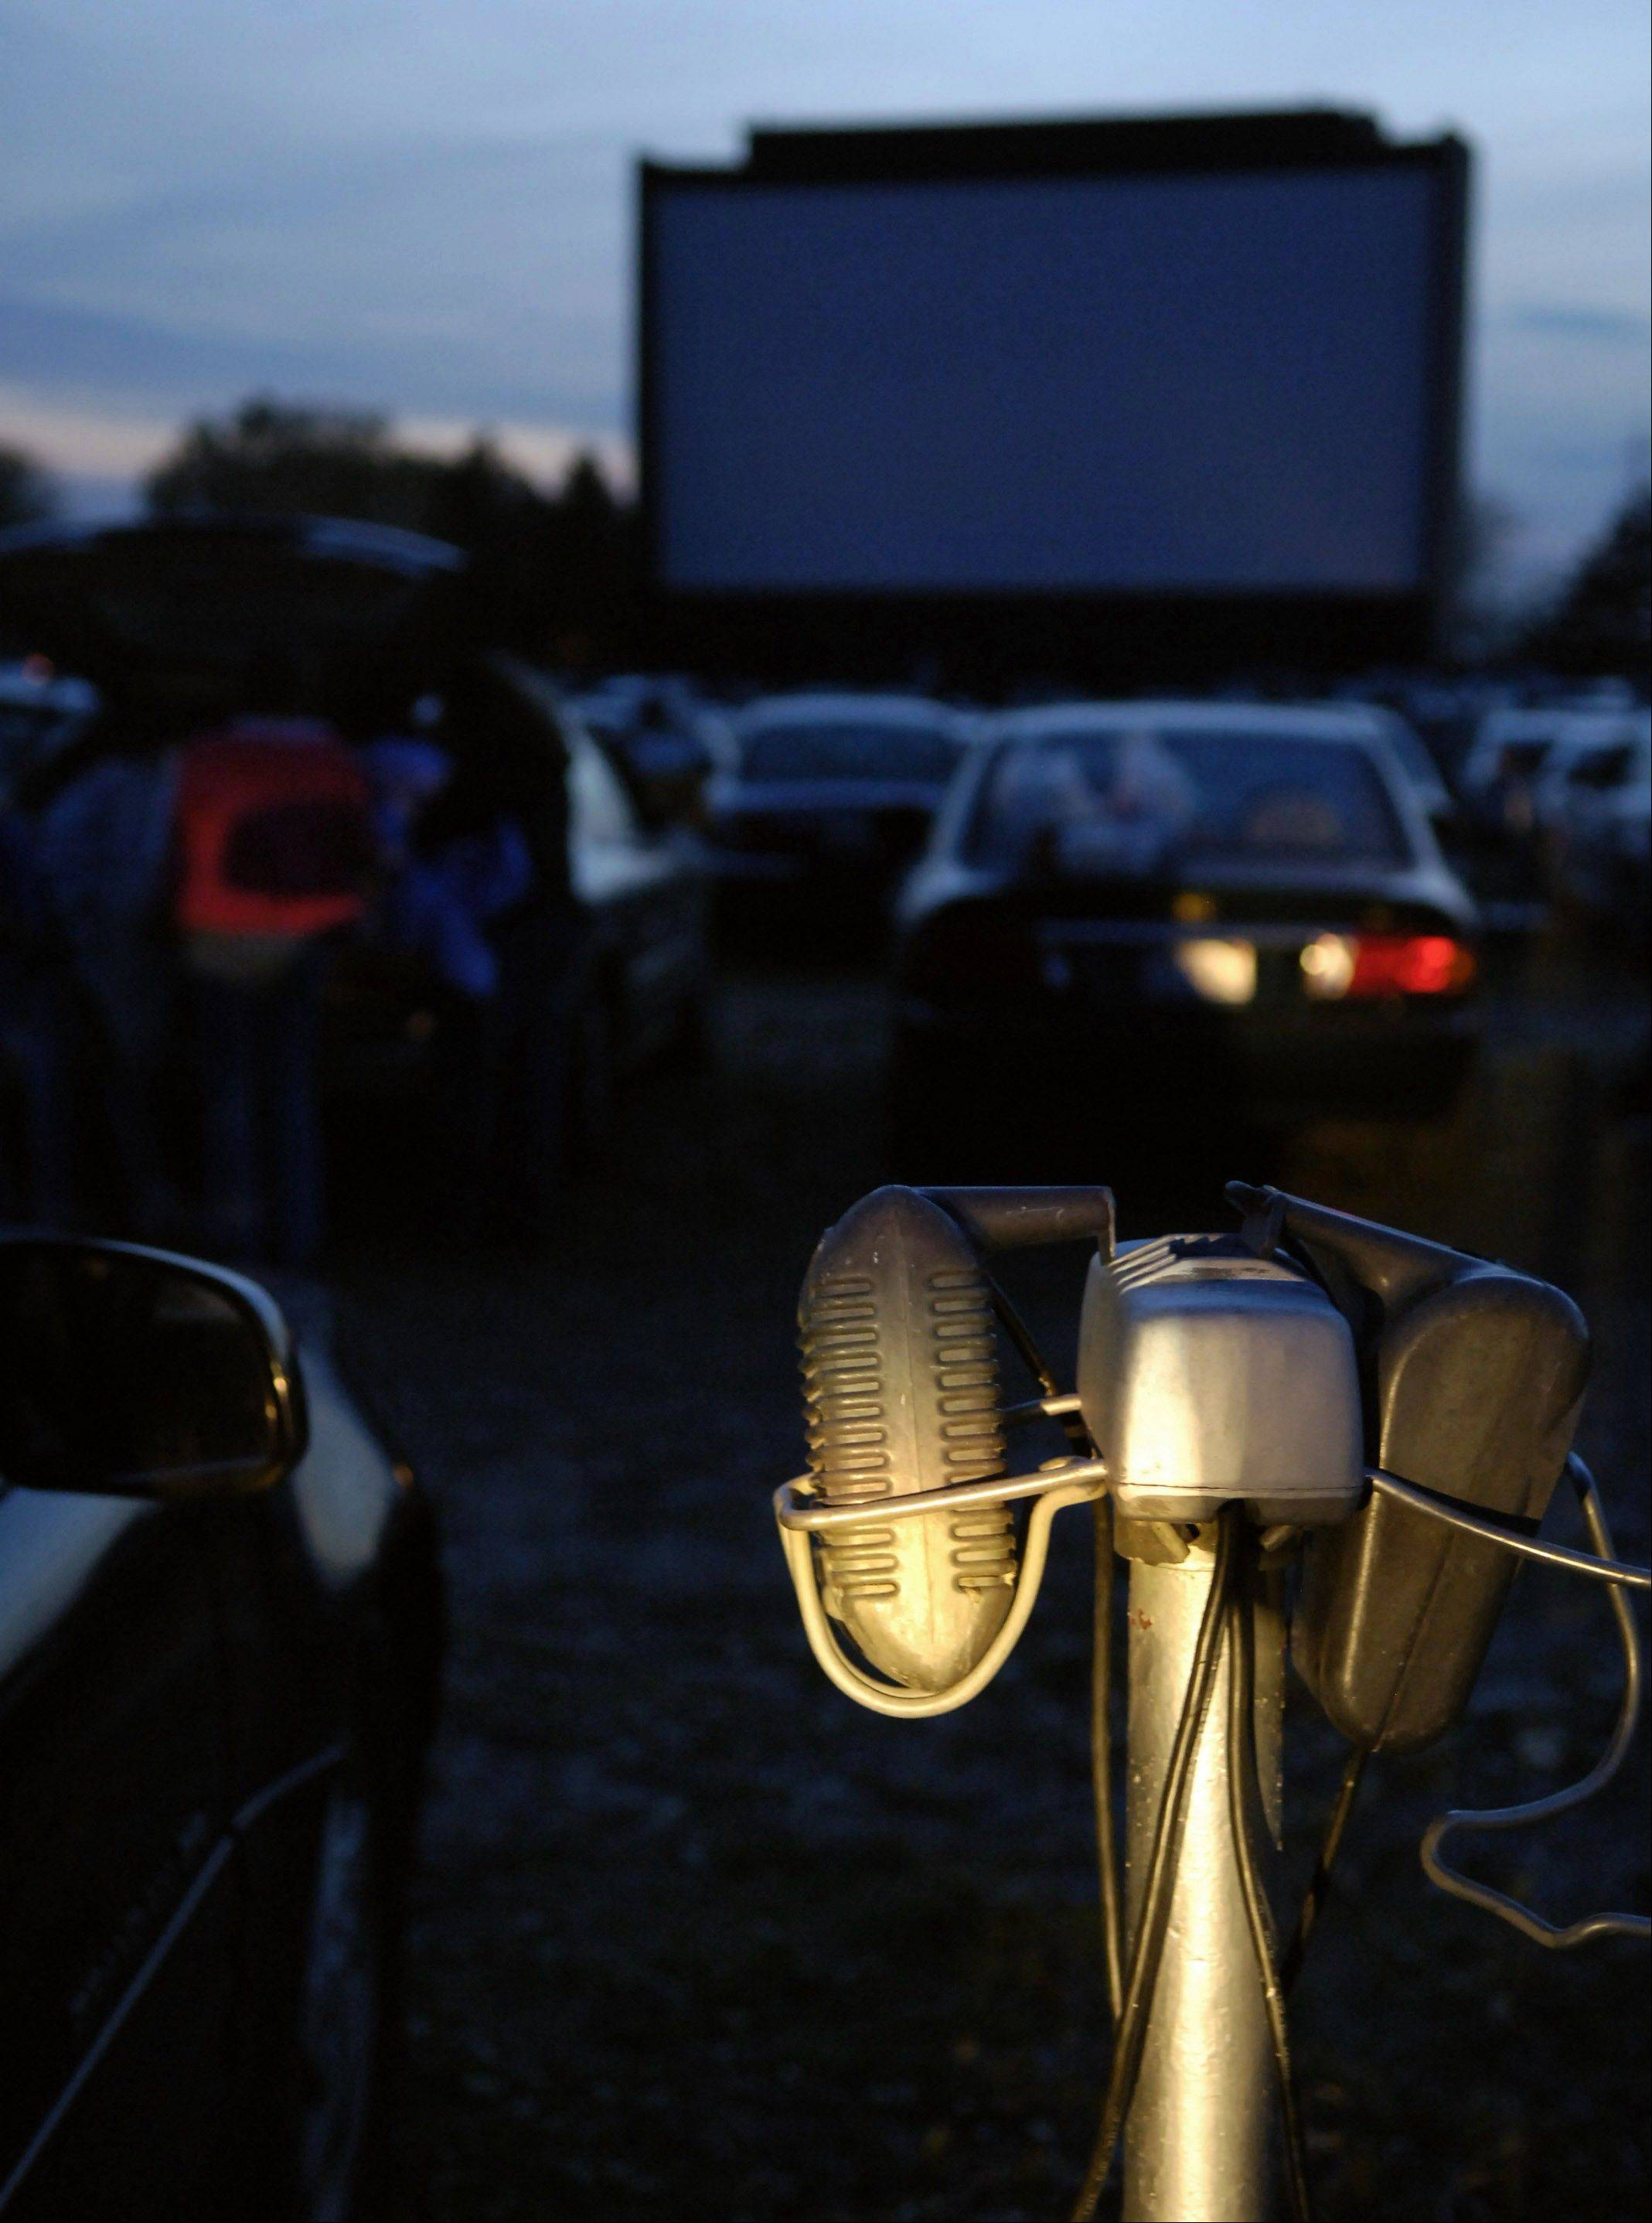 Drive-in movie theaters that scraped by during the surge in modern multiplexes are edging closer to extinction as Hollywood phases out the 35-millimeter reels they need to show films.